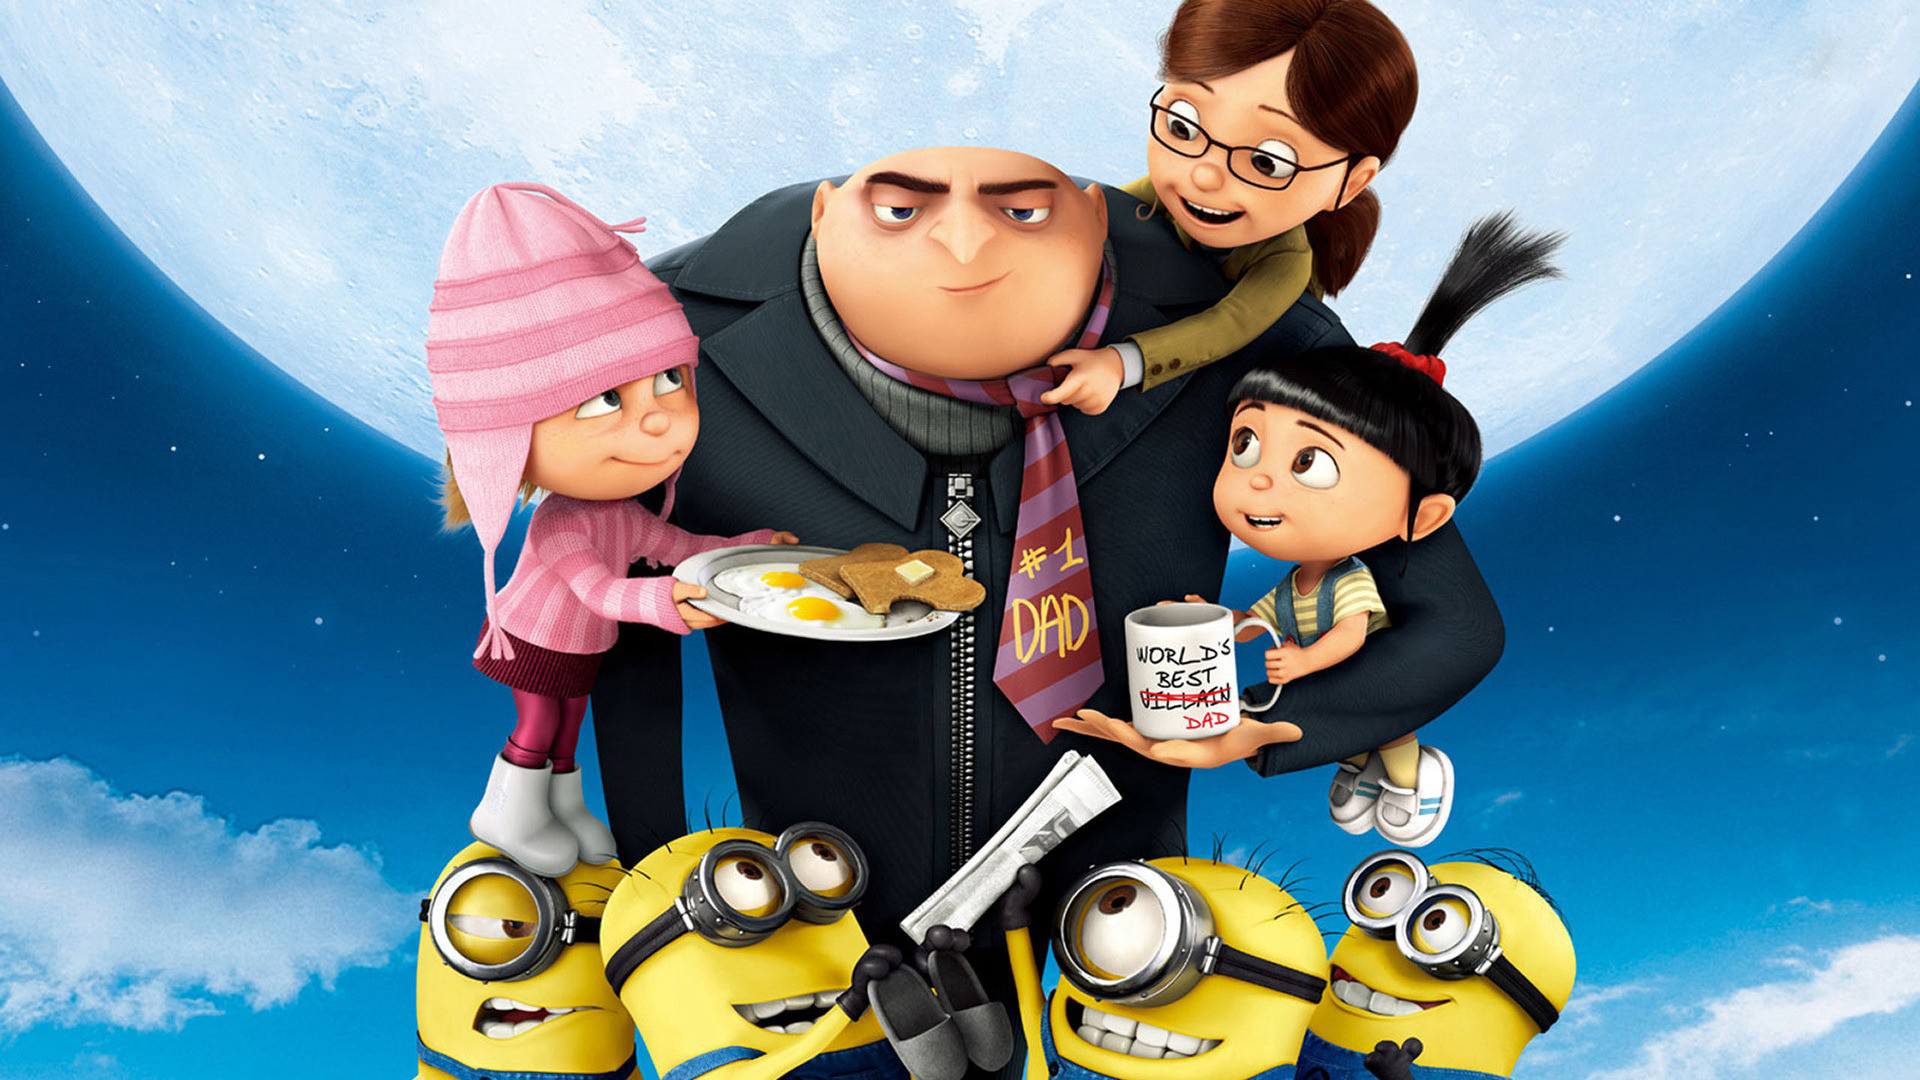 Despicable Me wallpapers 1920x1080